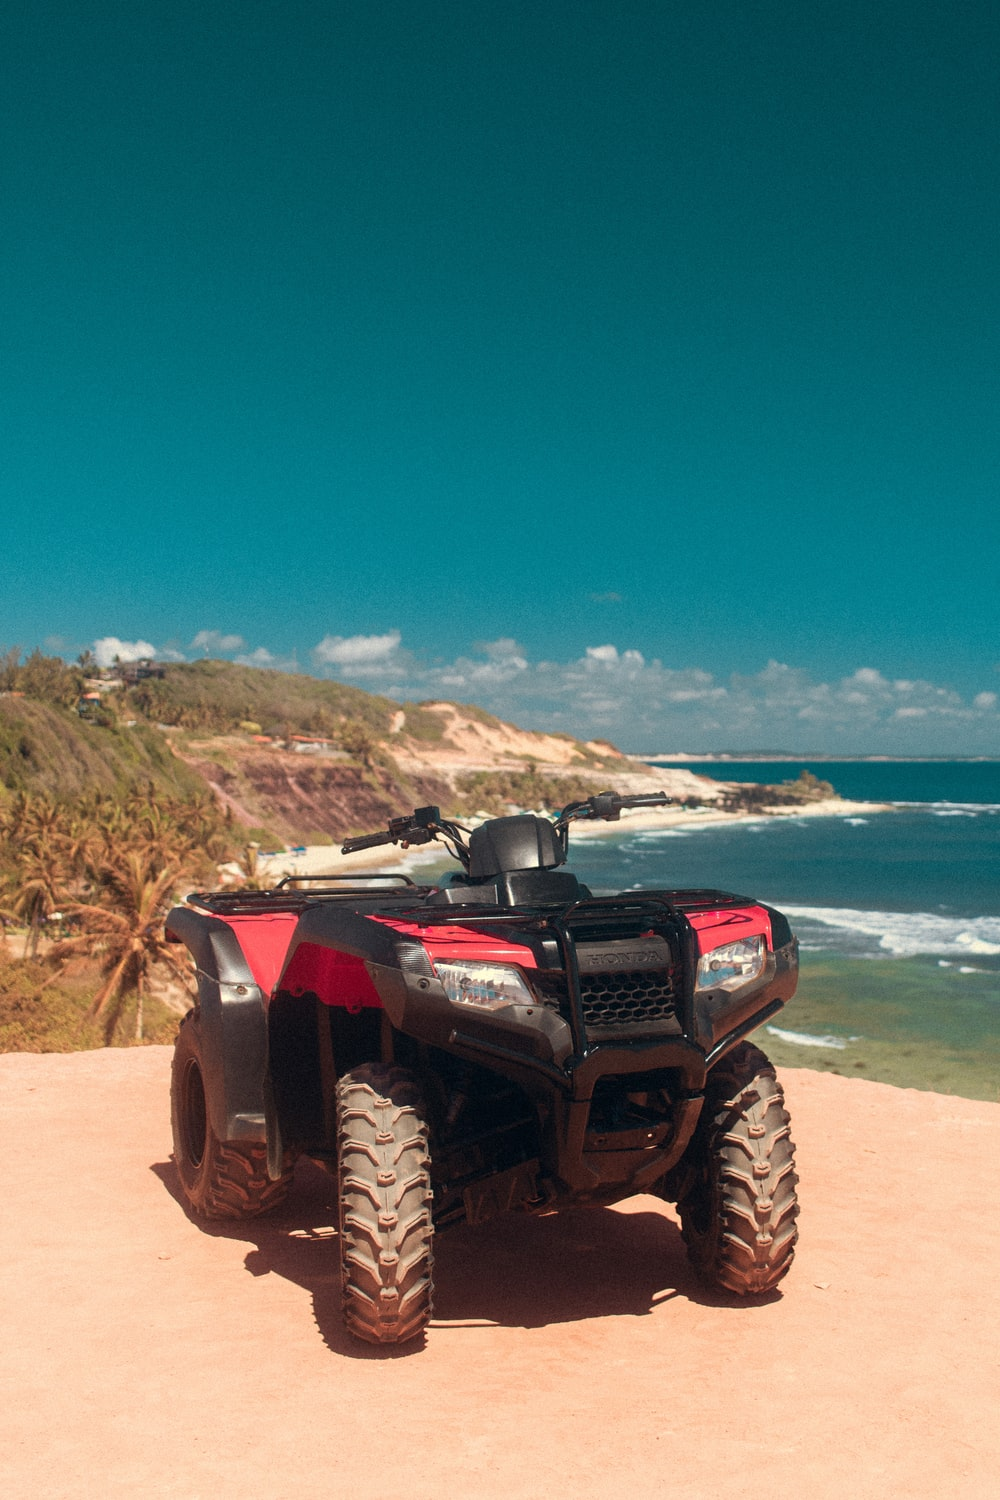 red and black ATV on the beach